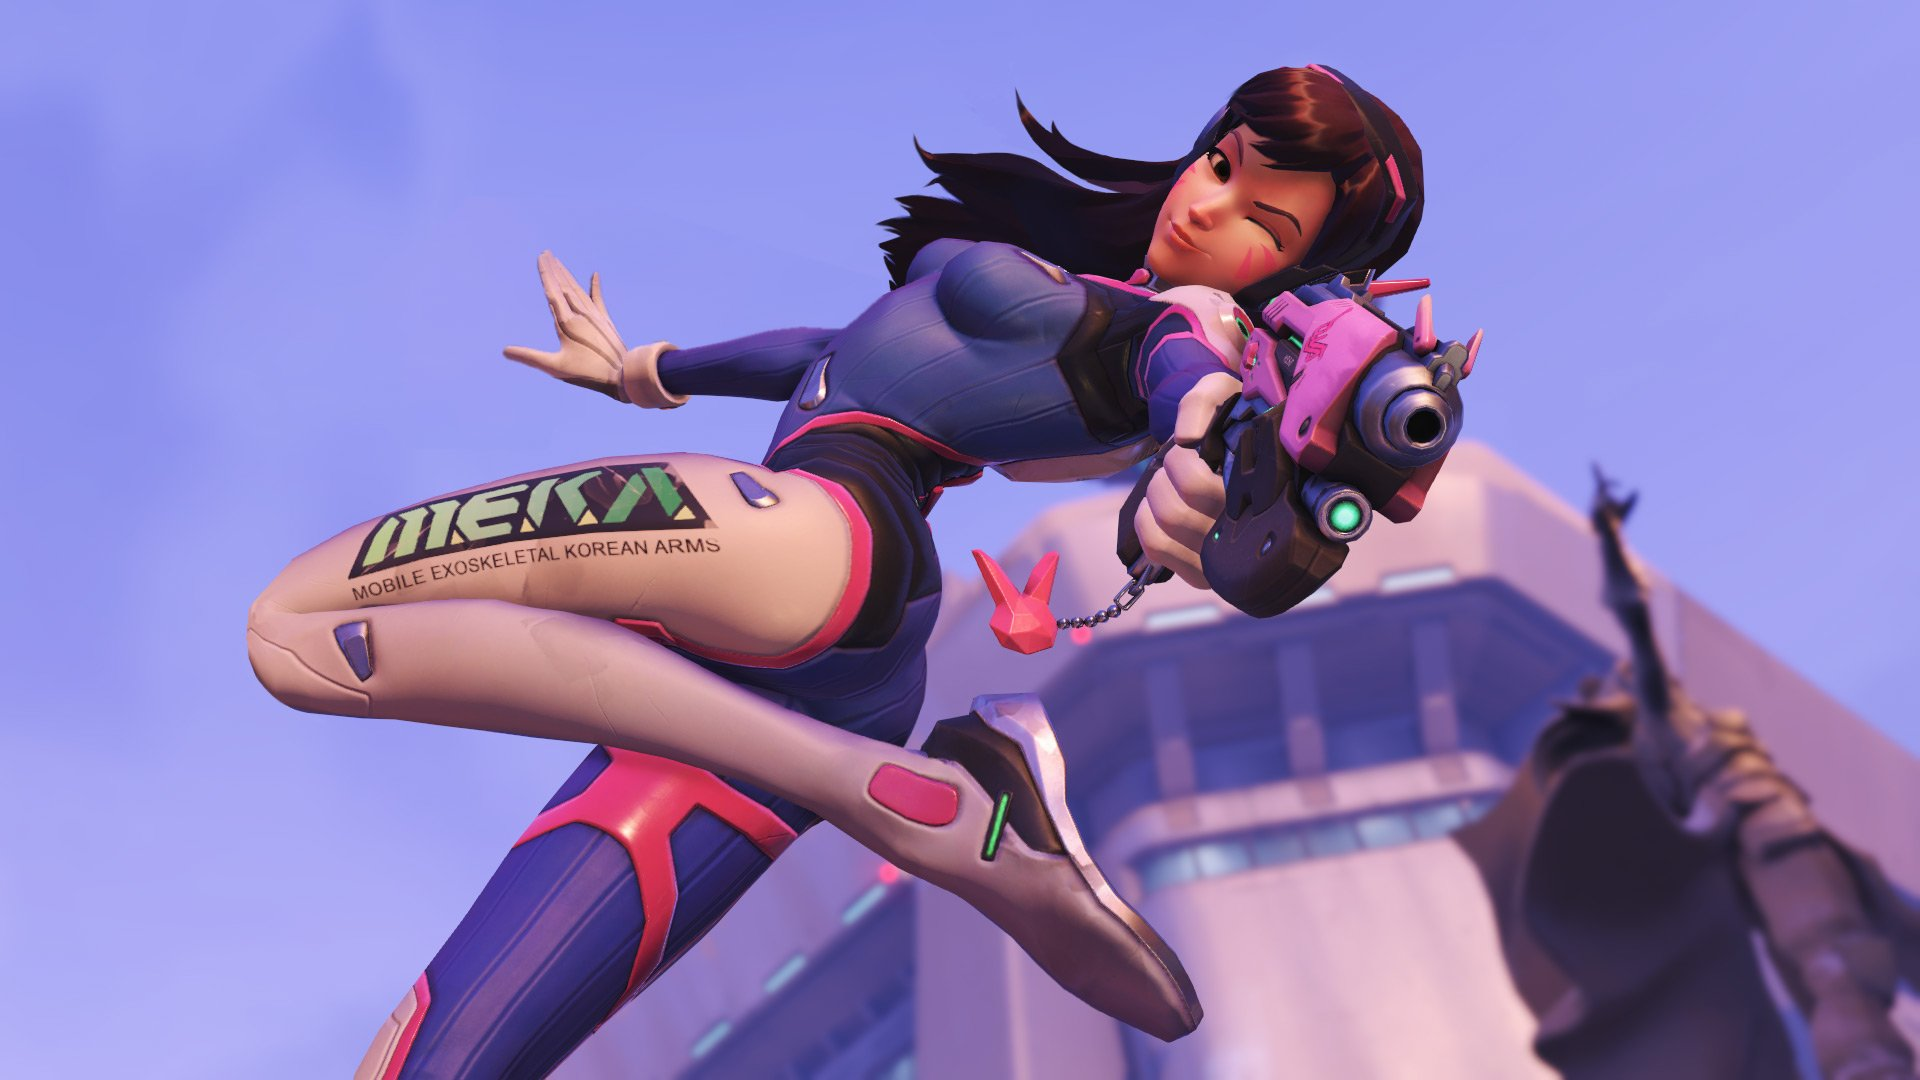 D.Va is suiting up to be the next Overwatch statue from Blizzard screenshot